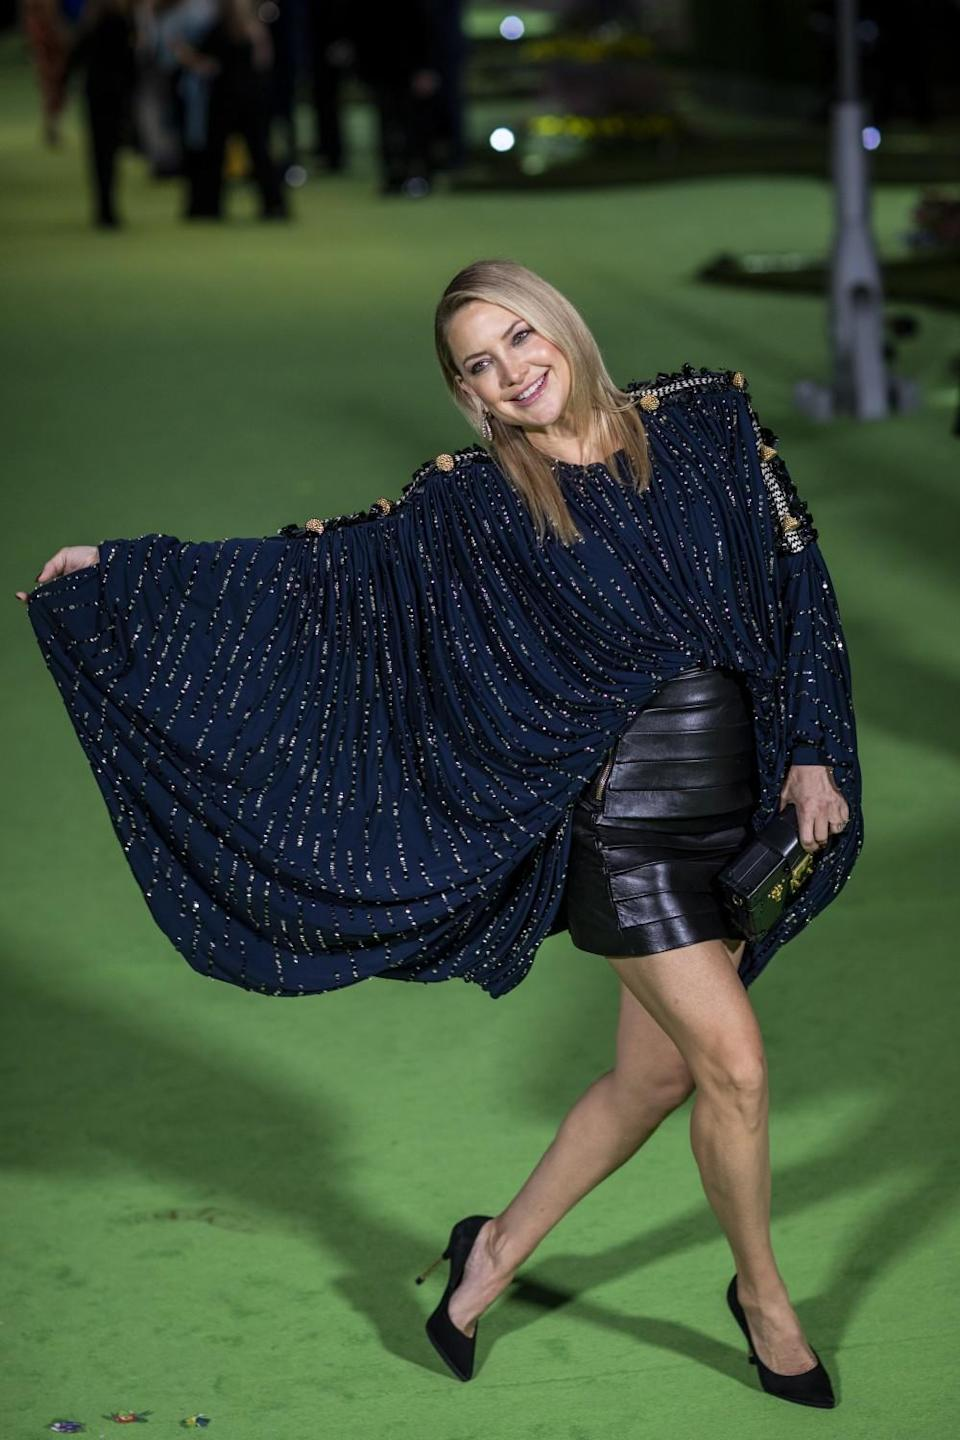 A woman in a blue shirt and black miniskirt posing on a green carpet